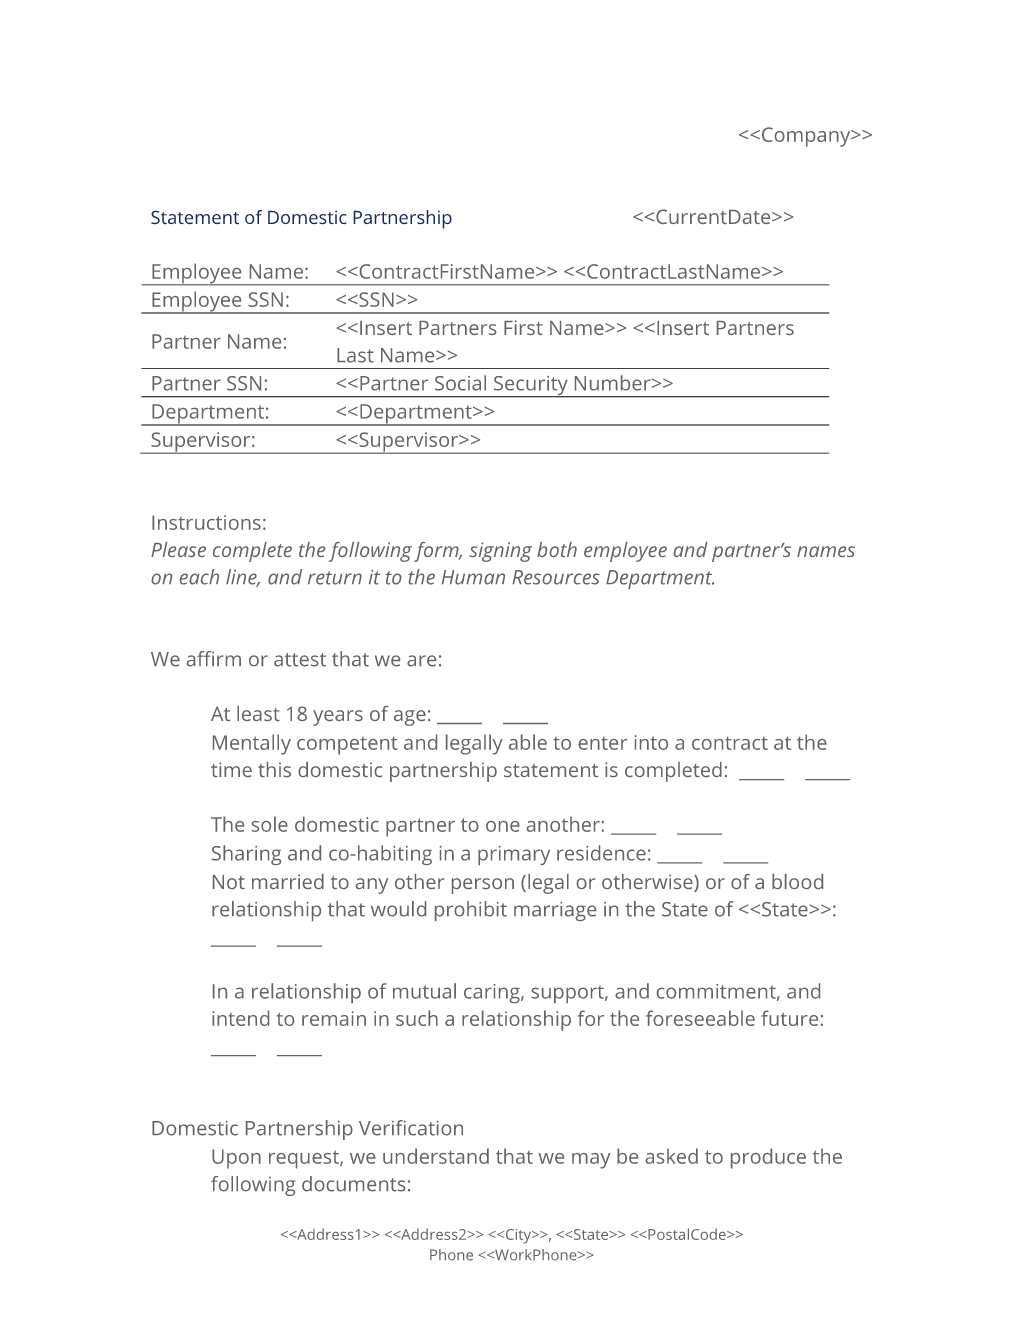 Statement of Domestic Partnership Form